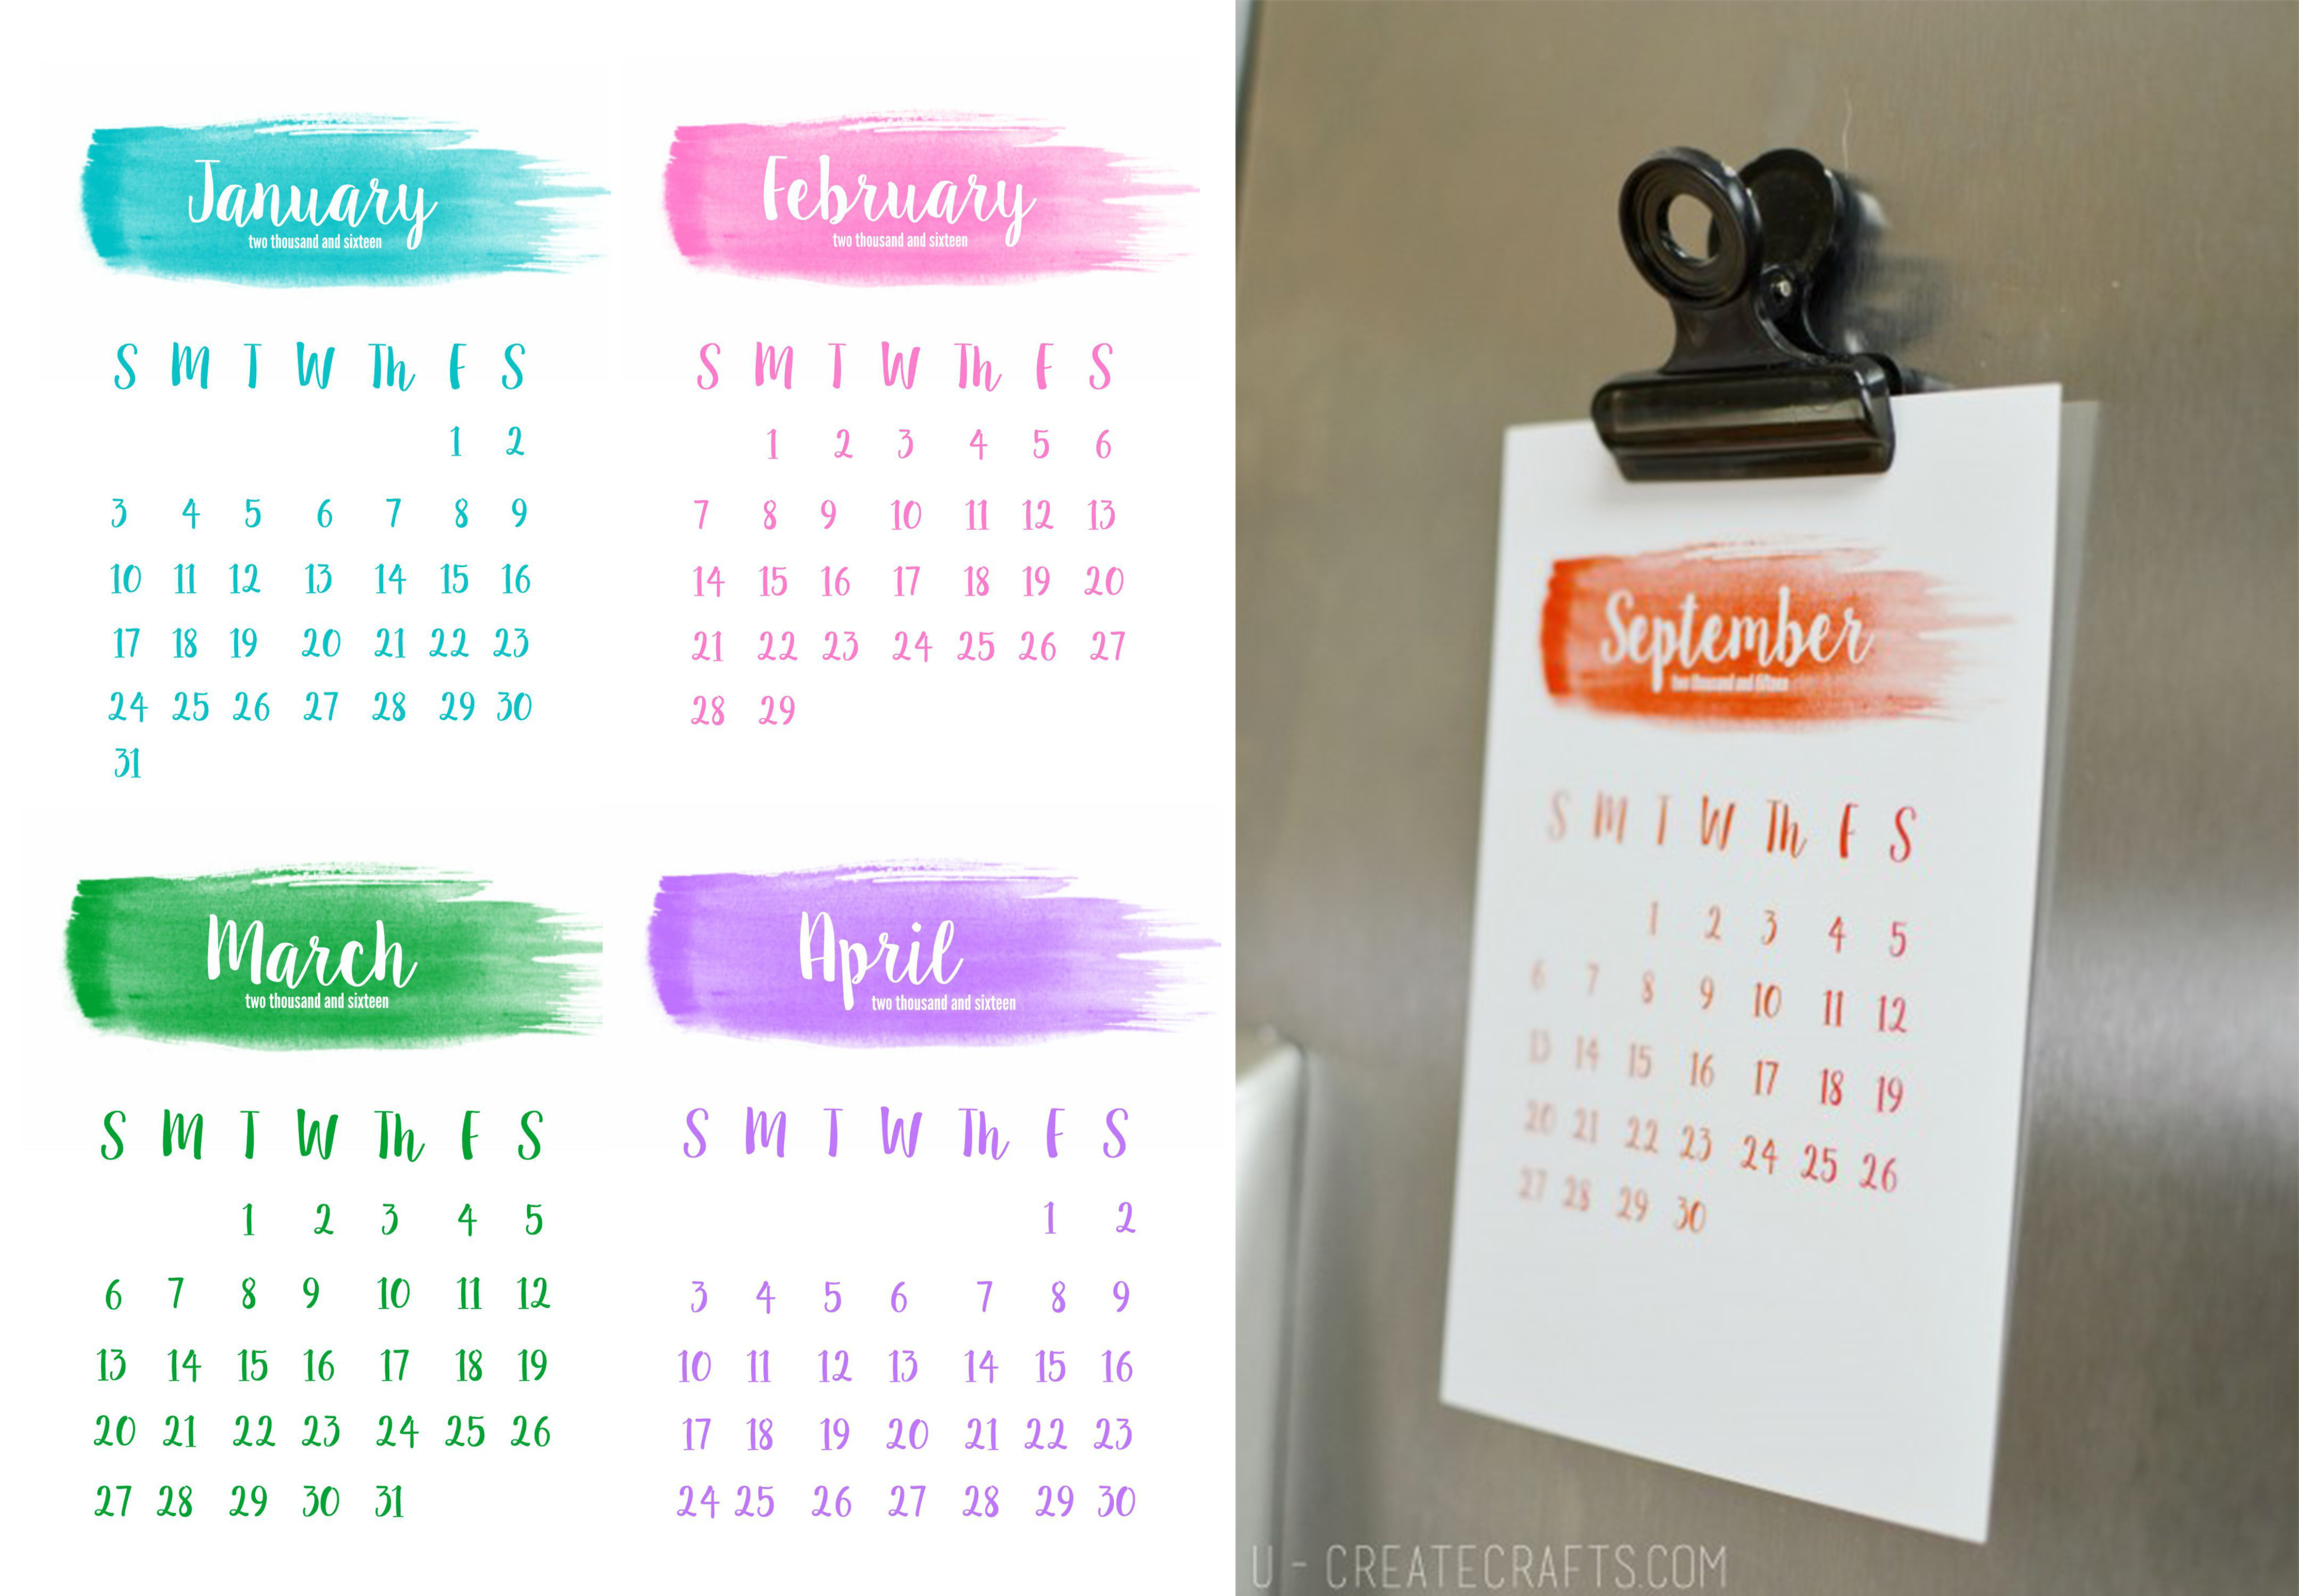 gratis-kalender-downloaden-u-create-crafts